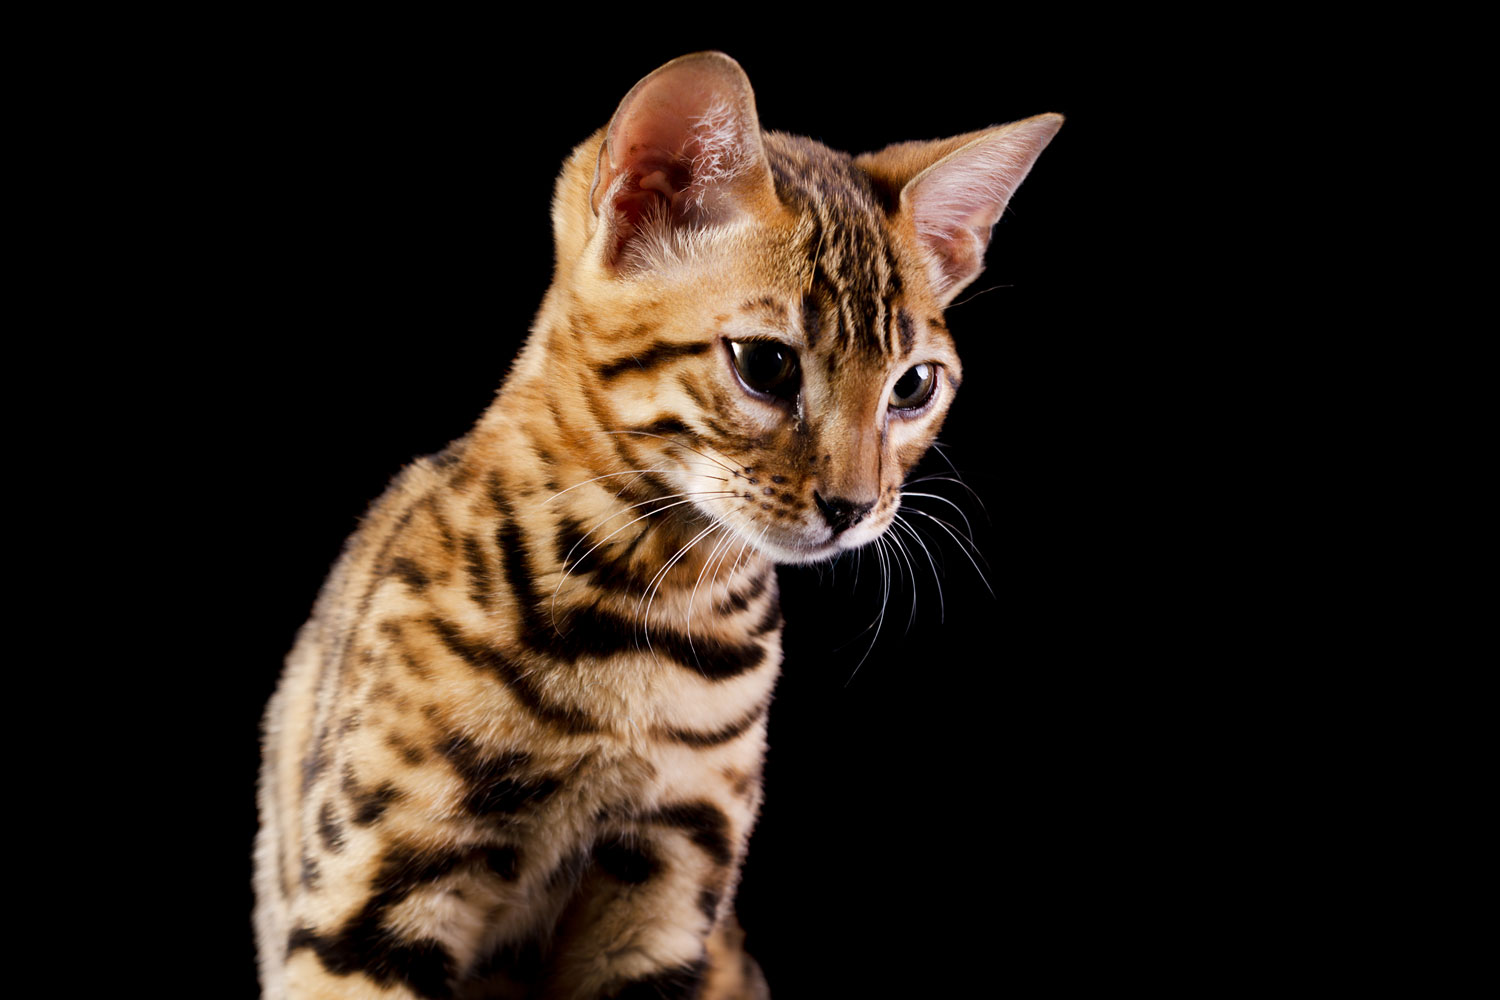 A cute Bengal kitten on a white background